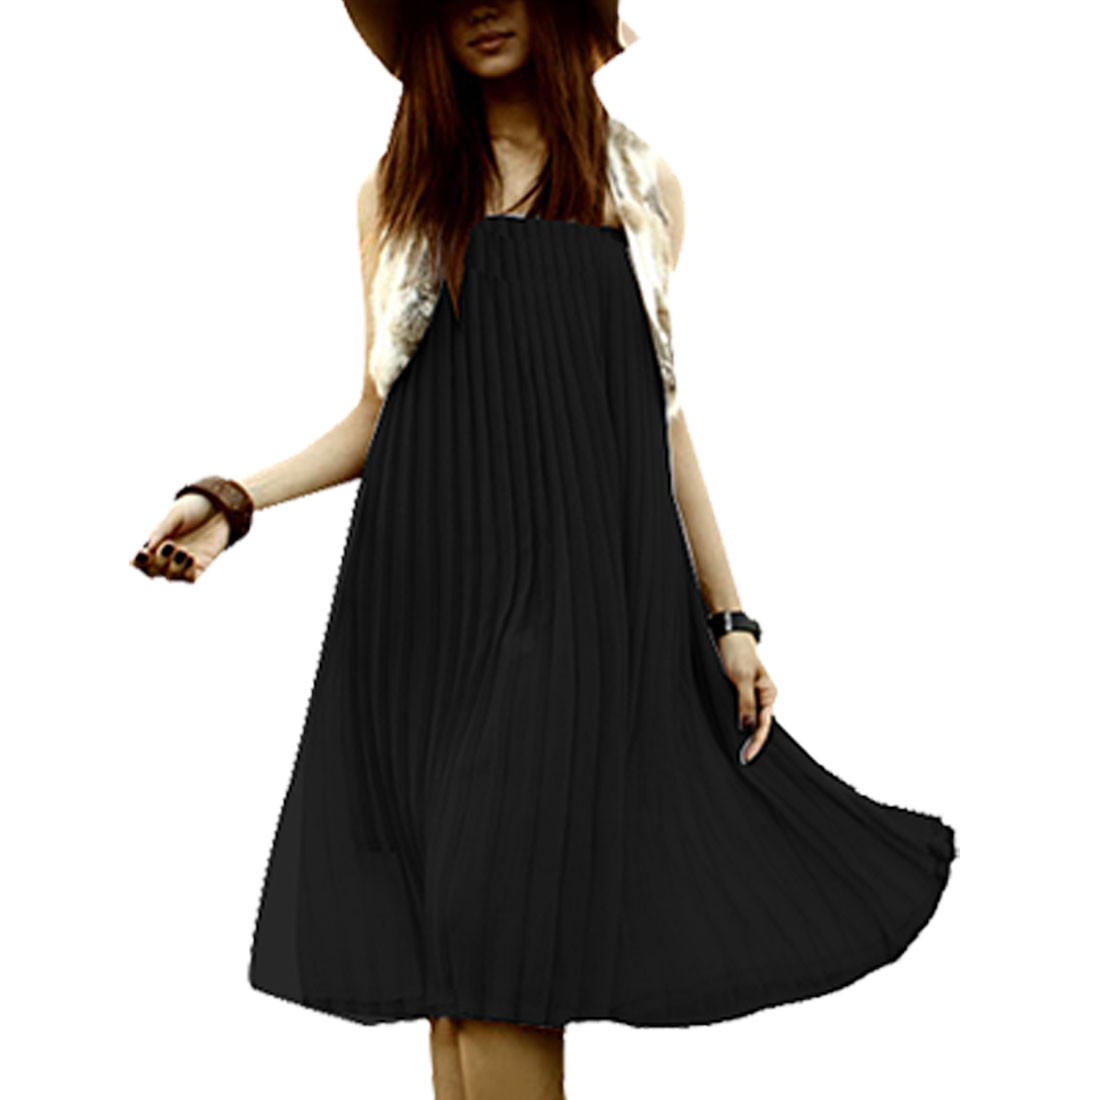 Woman Black Chiffon Accordion Pleated Elastic Top Tube Dress XS